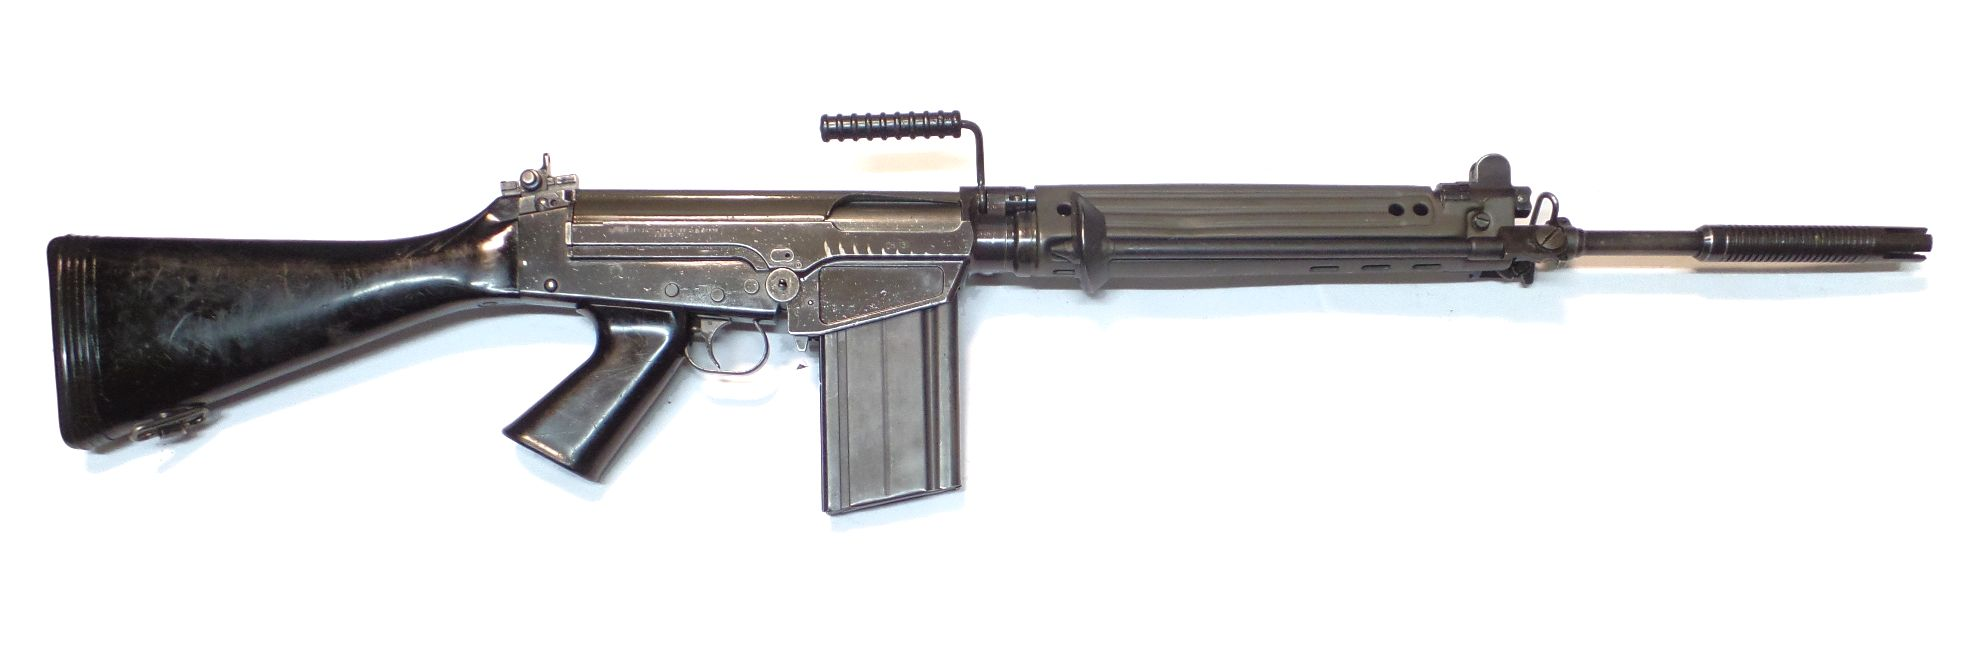 STEYR FAL STG58 calibre .308Winchester